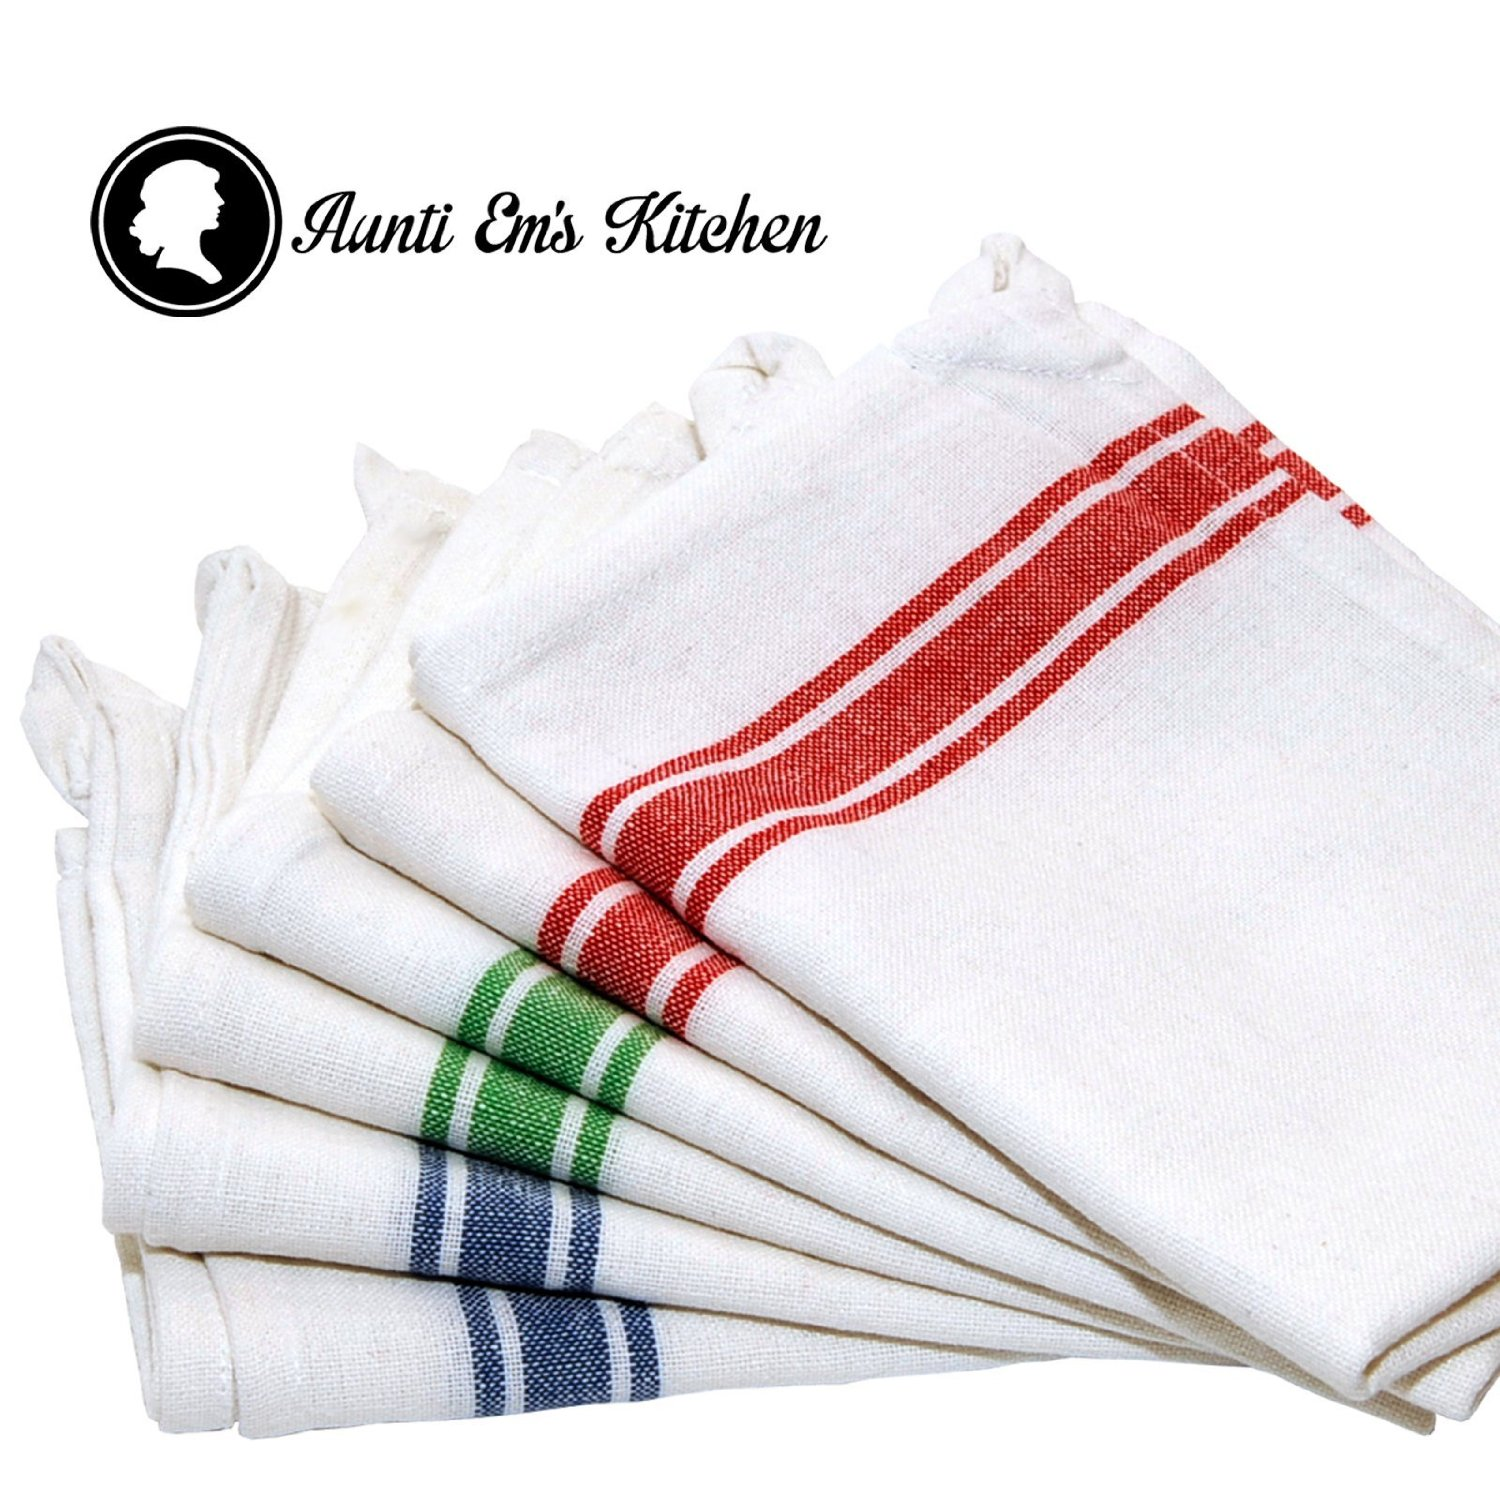 Top 10 Best Dish Clothes & Dish Towels 2019 Review